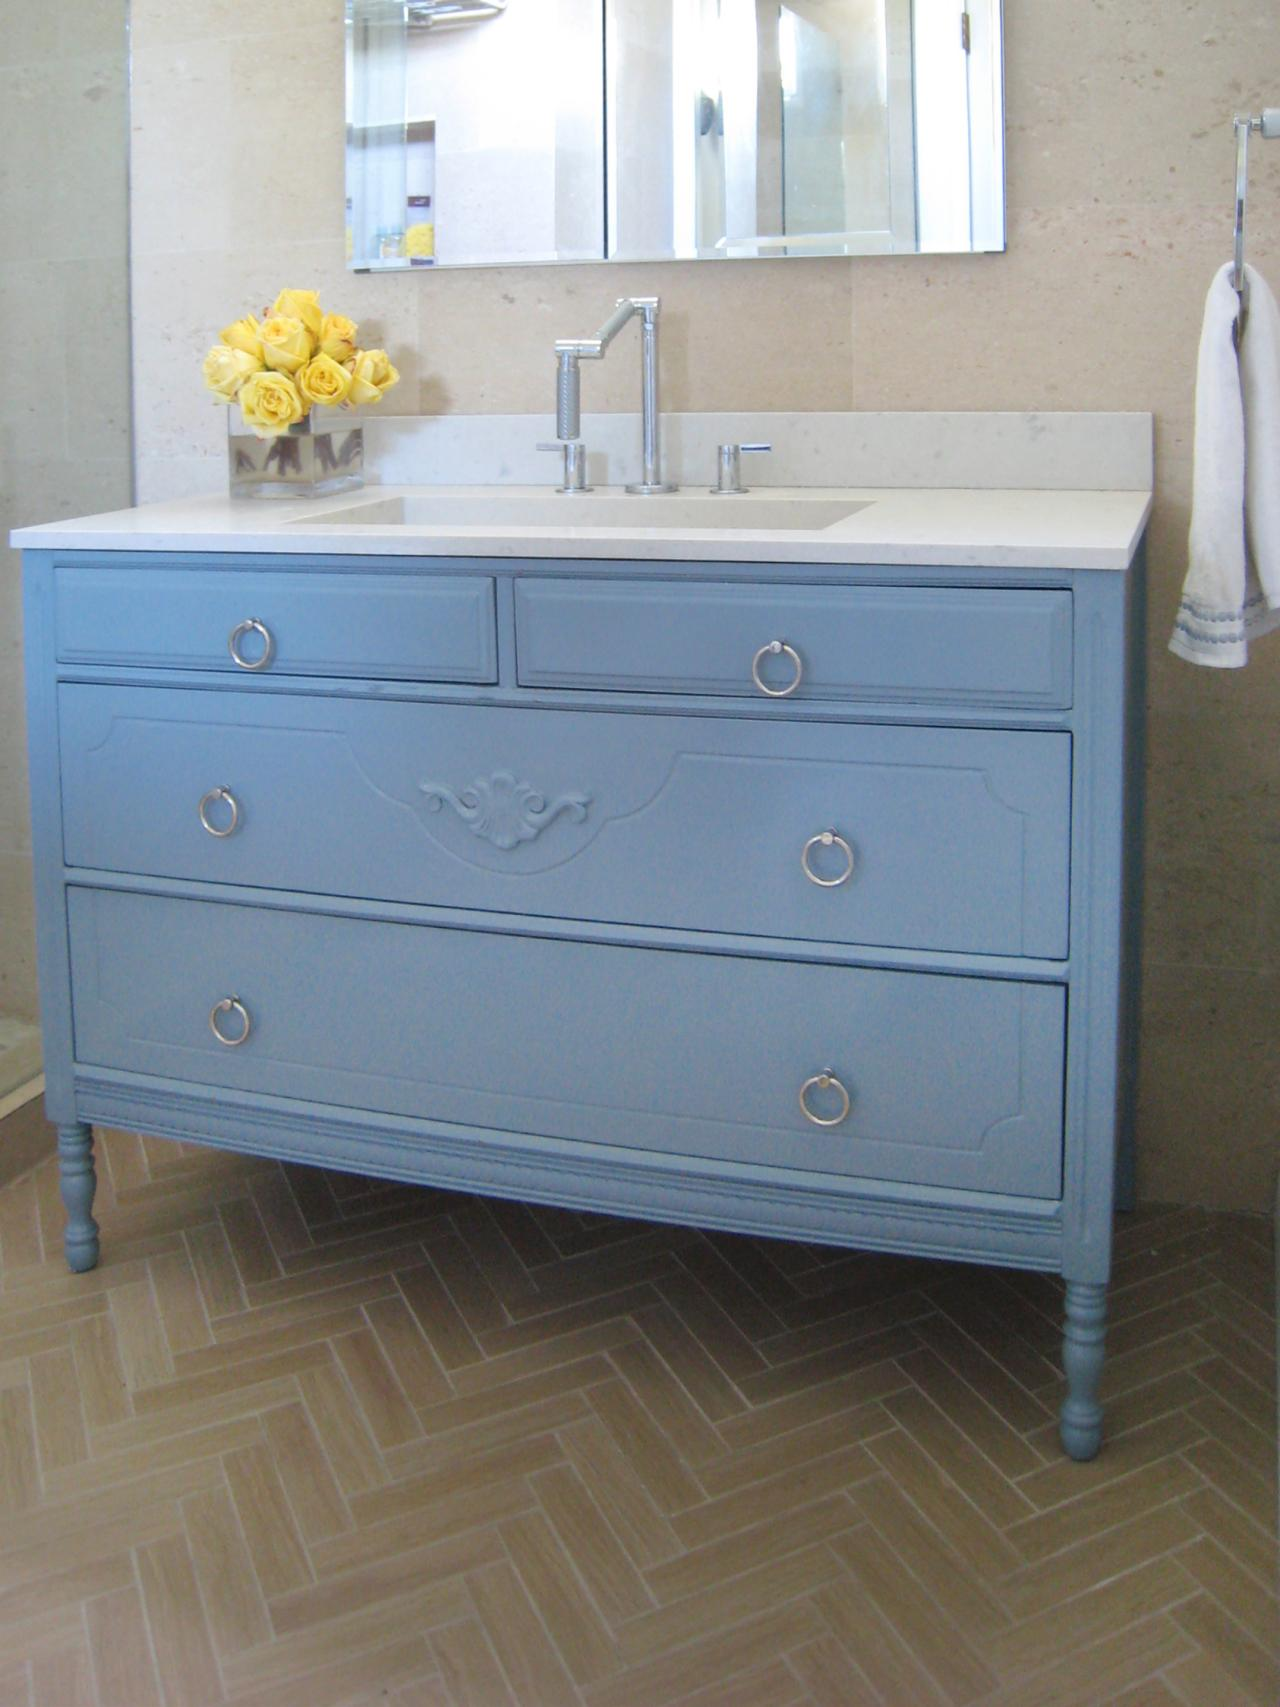 How to Turn a Cabinet Into a Bathroom Vanity - How To Turn A Cabinet Into A Bathroom Vanity HGTV